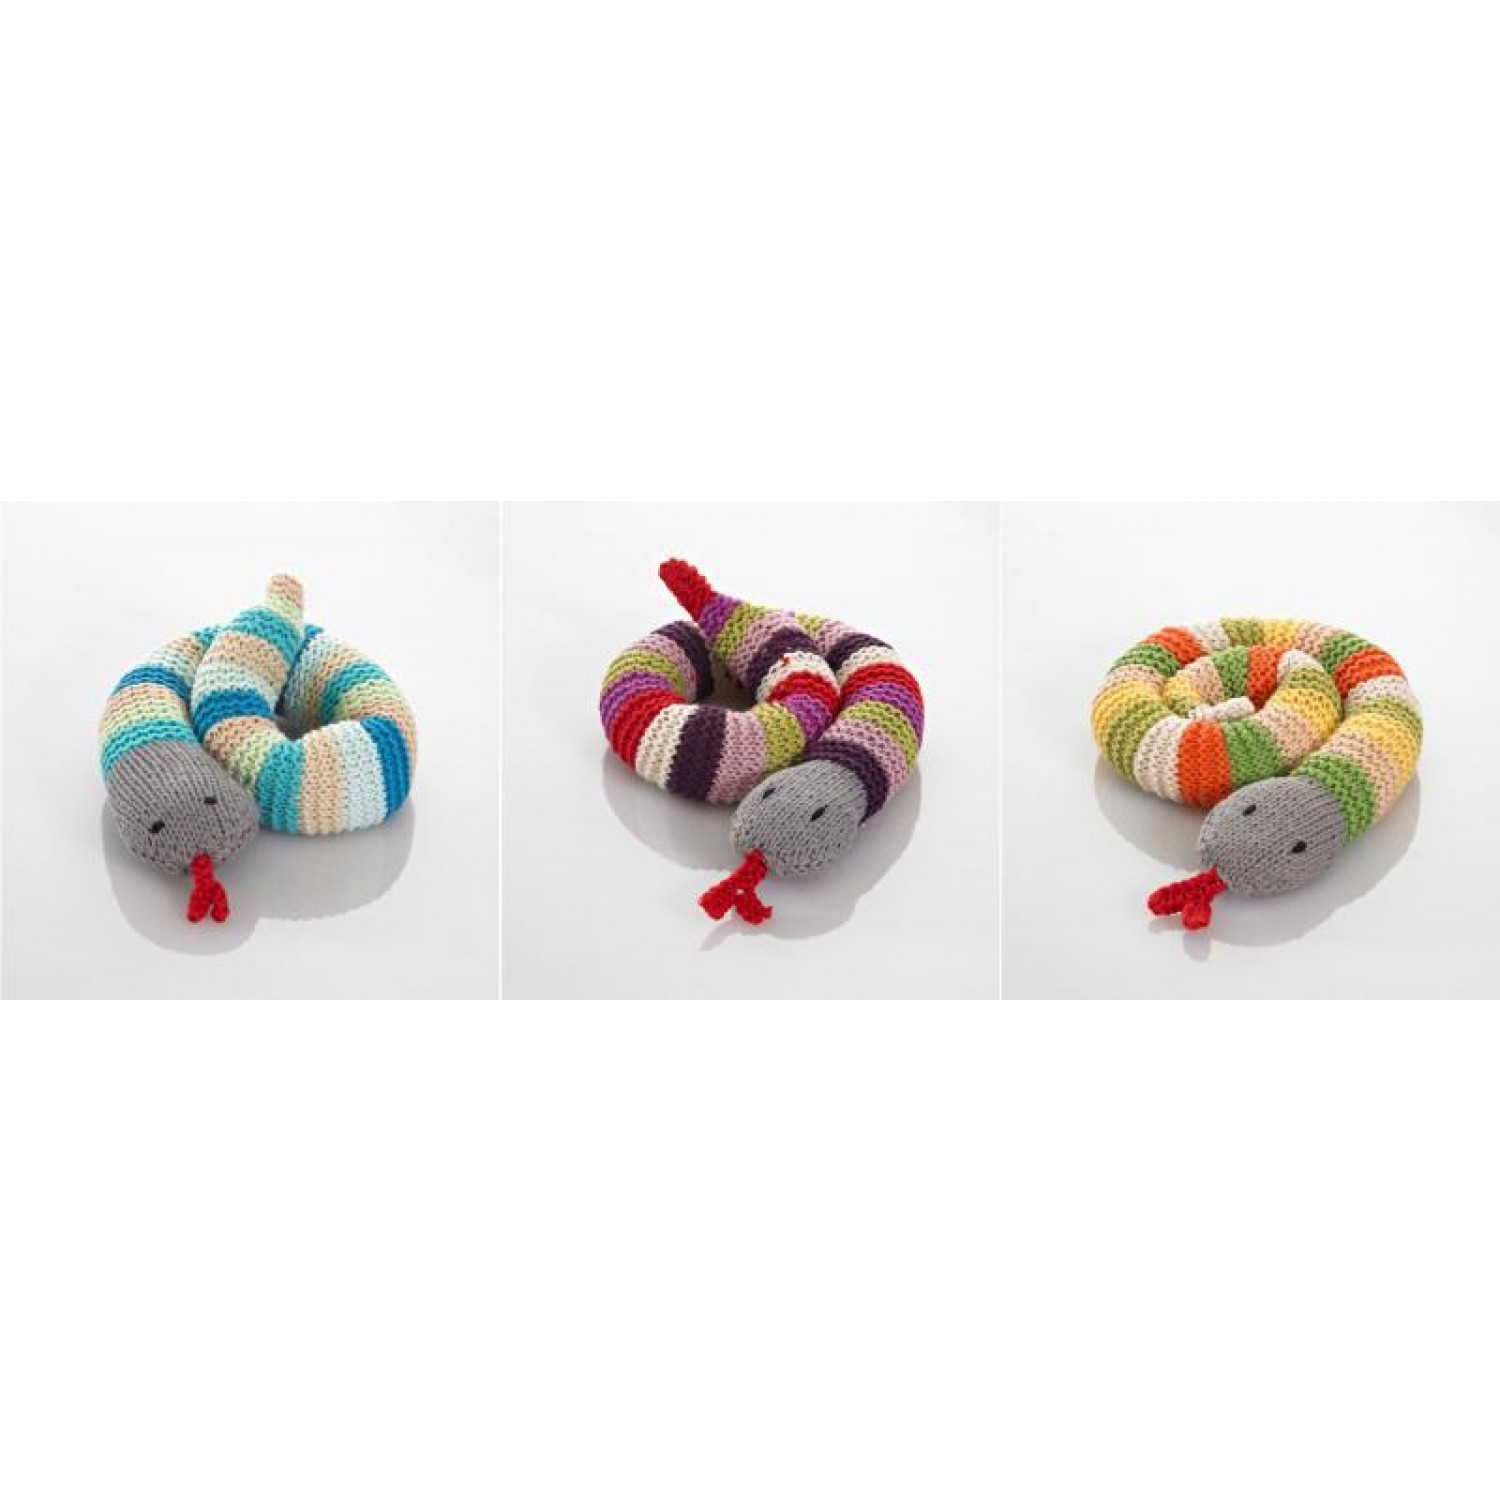 Handmade Rattle Snake of Cotton various colours | Pebble